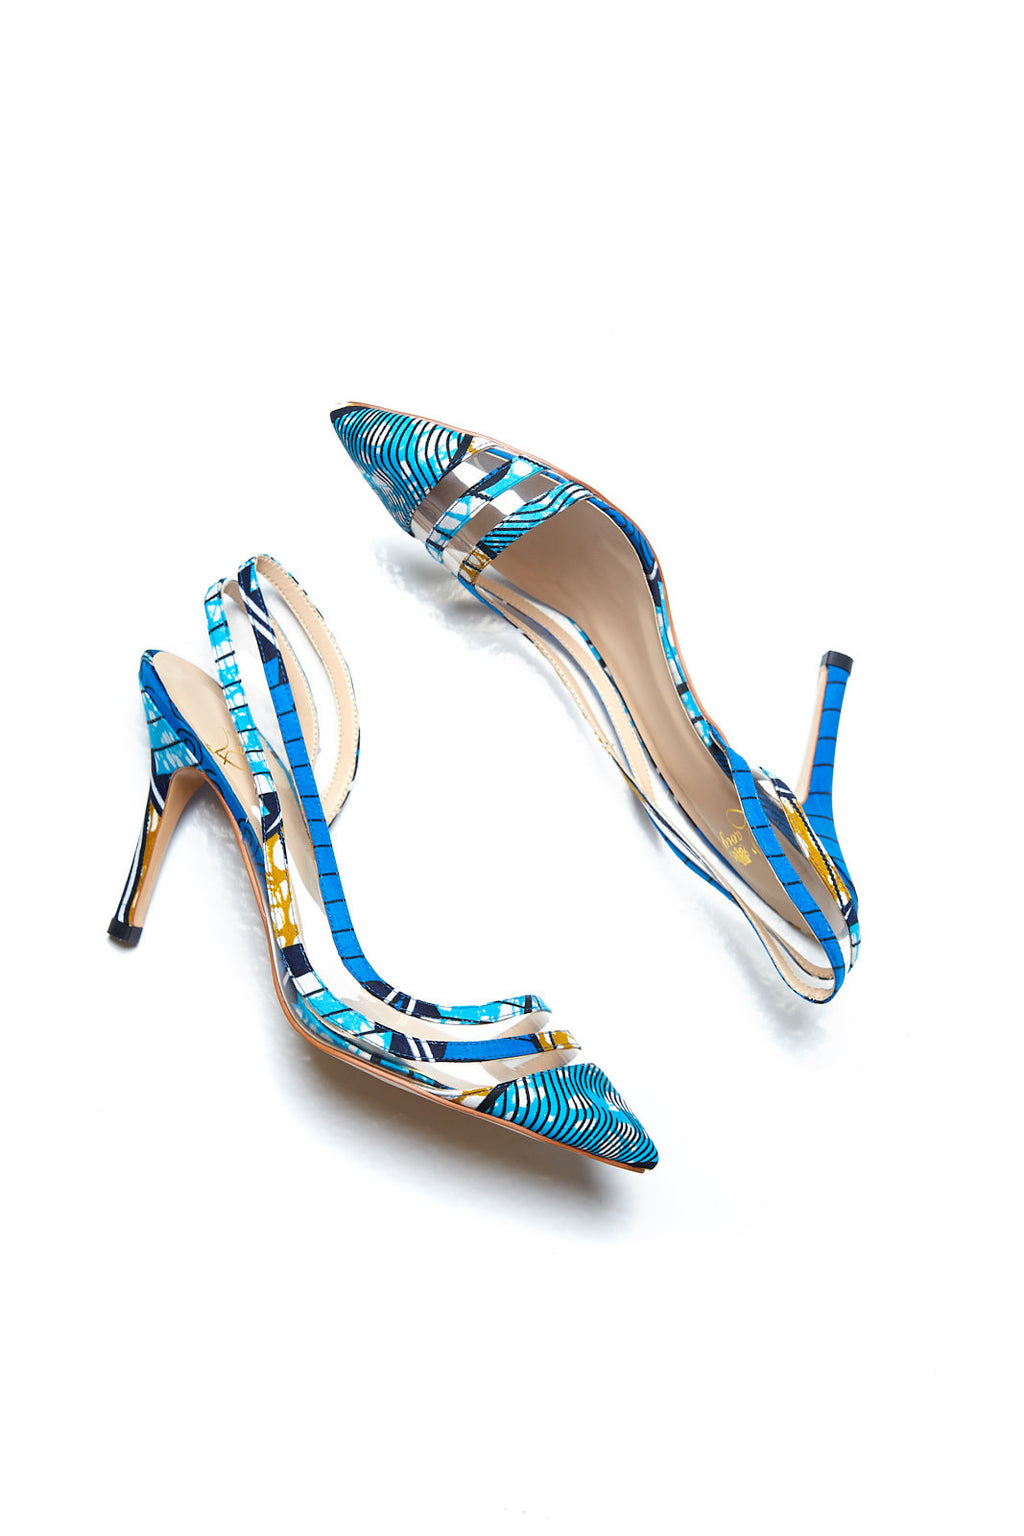 African Print Blue Kitten Heel Shoes with Side PVC detail - Nina